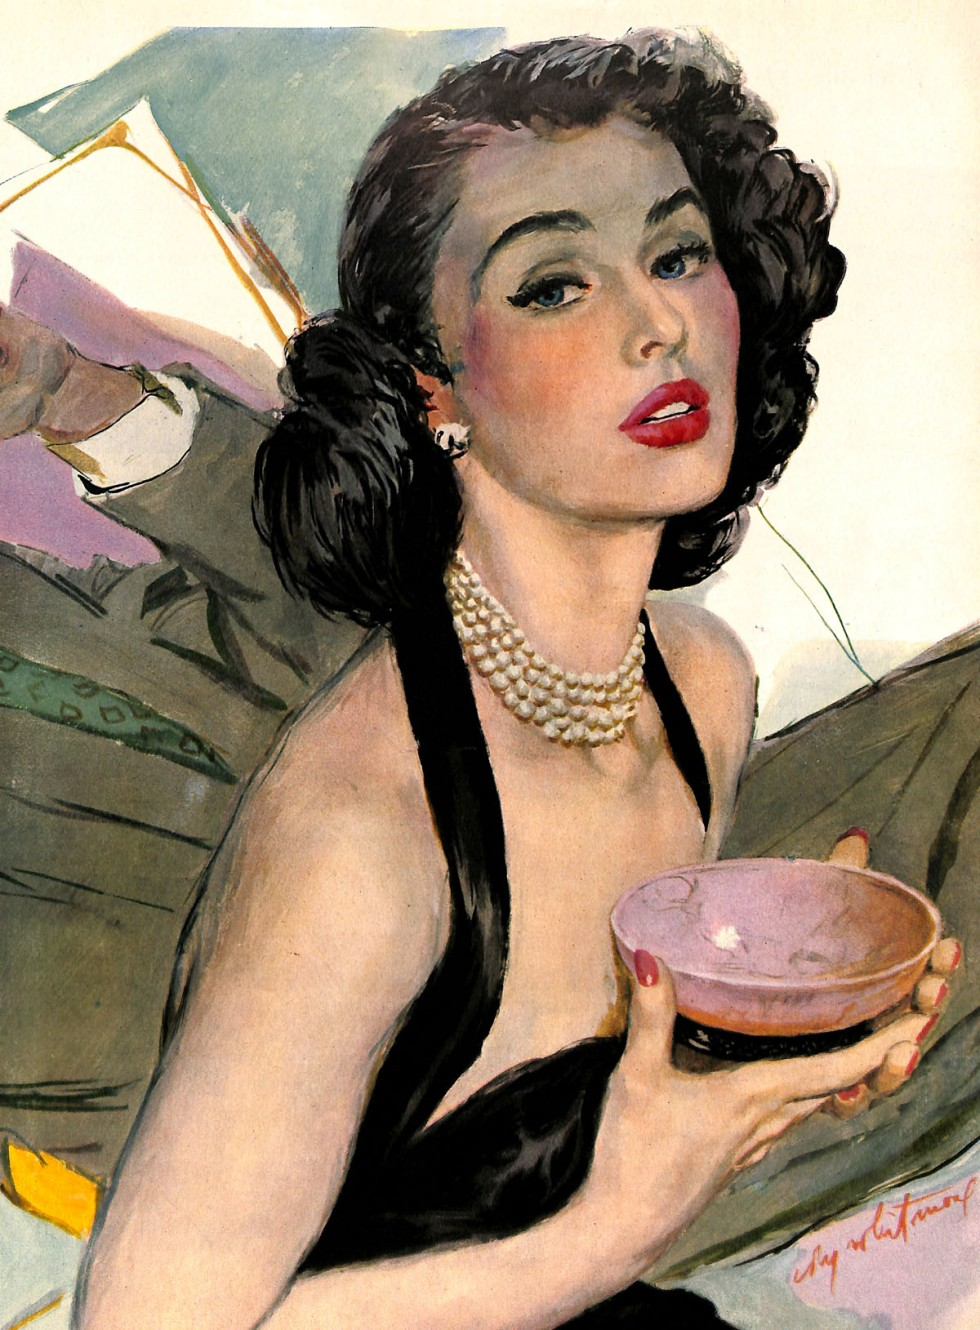 Glamorous Woman by Coby Whitmore